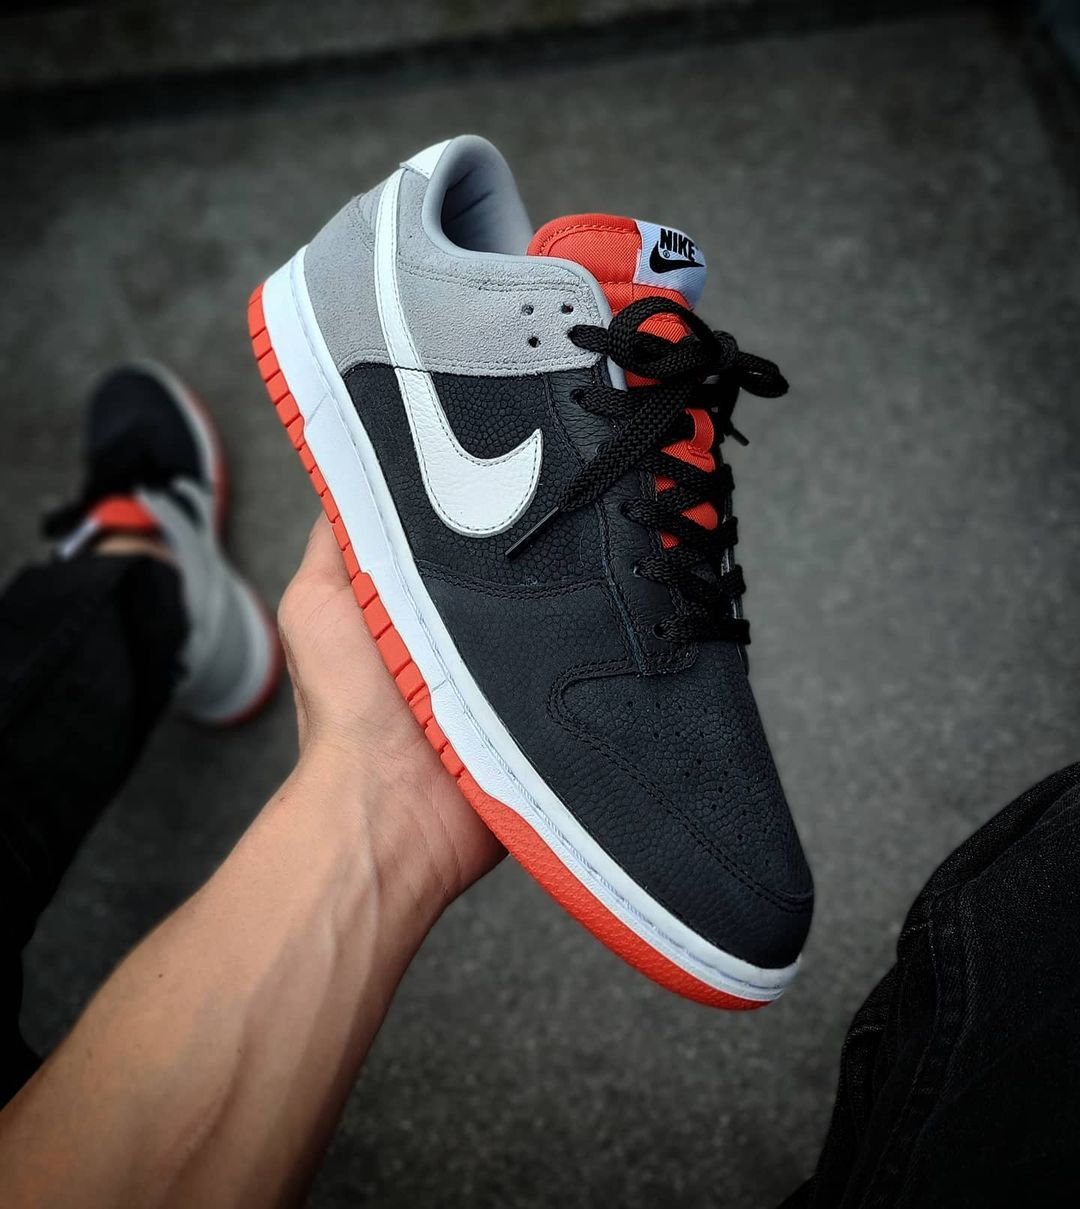 Nike Dunk Low by You 2021 samsneed.og